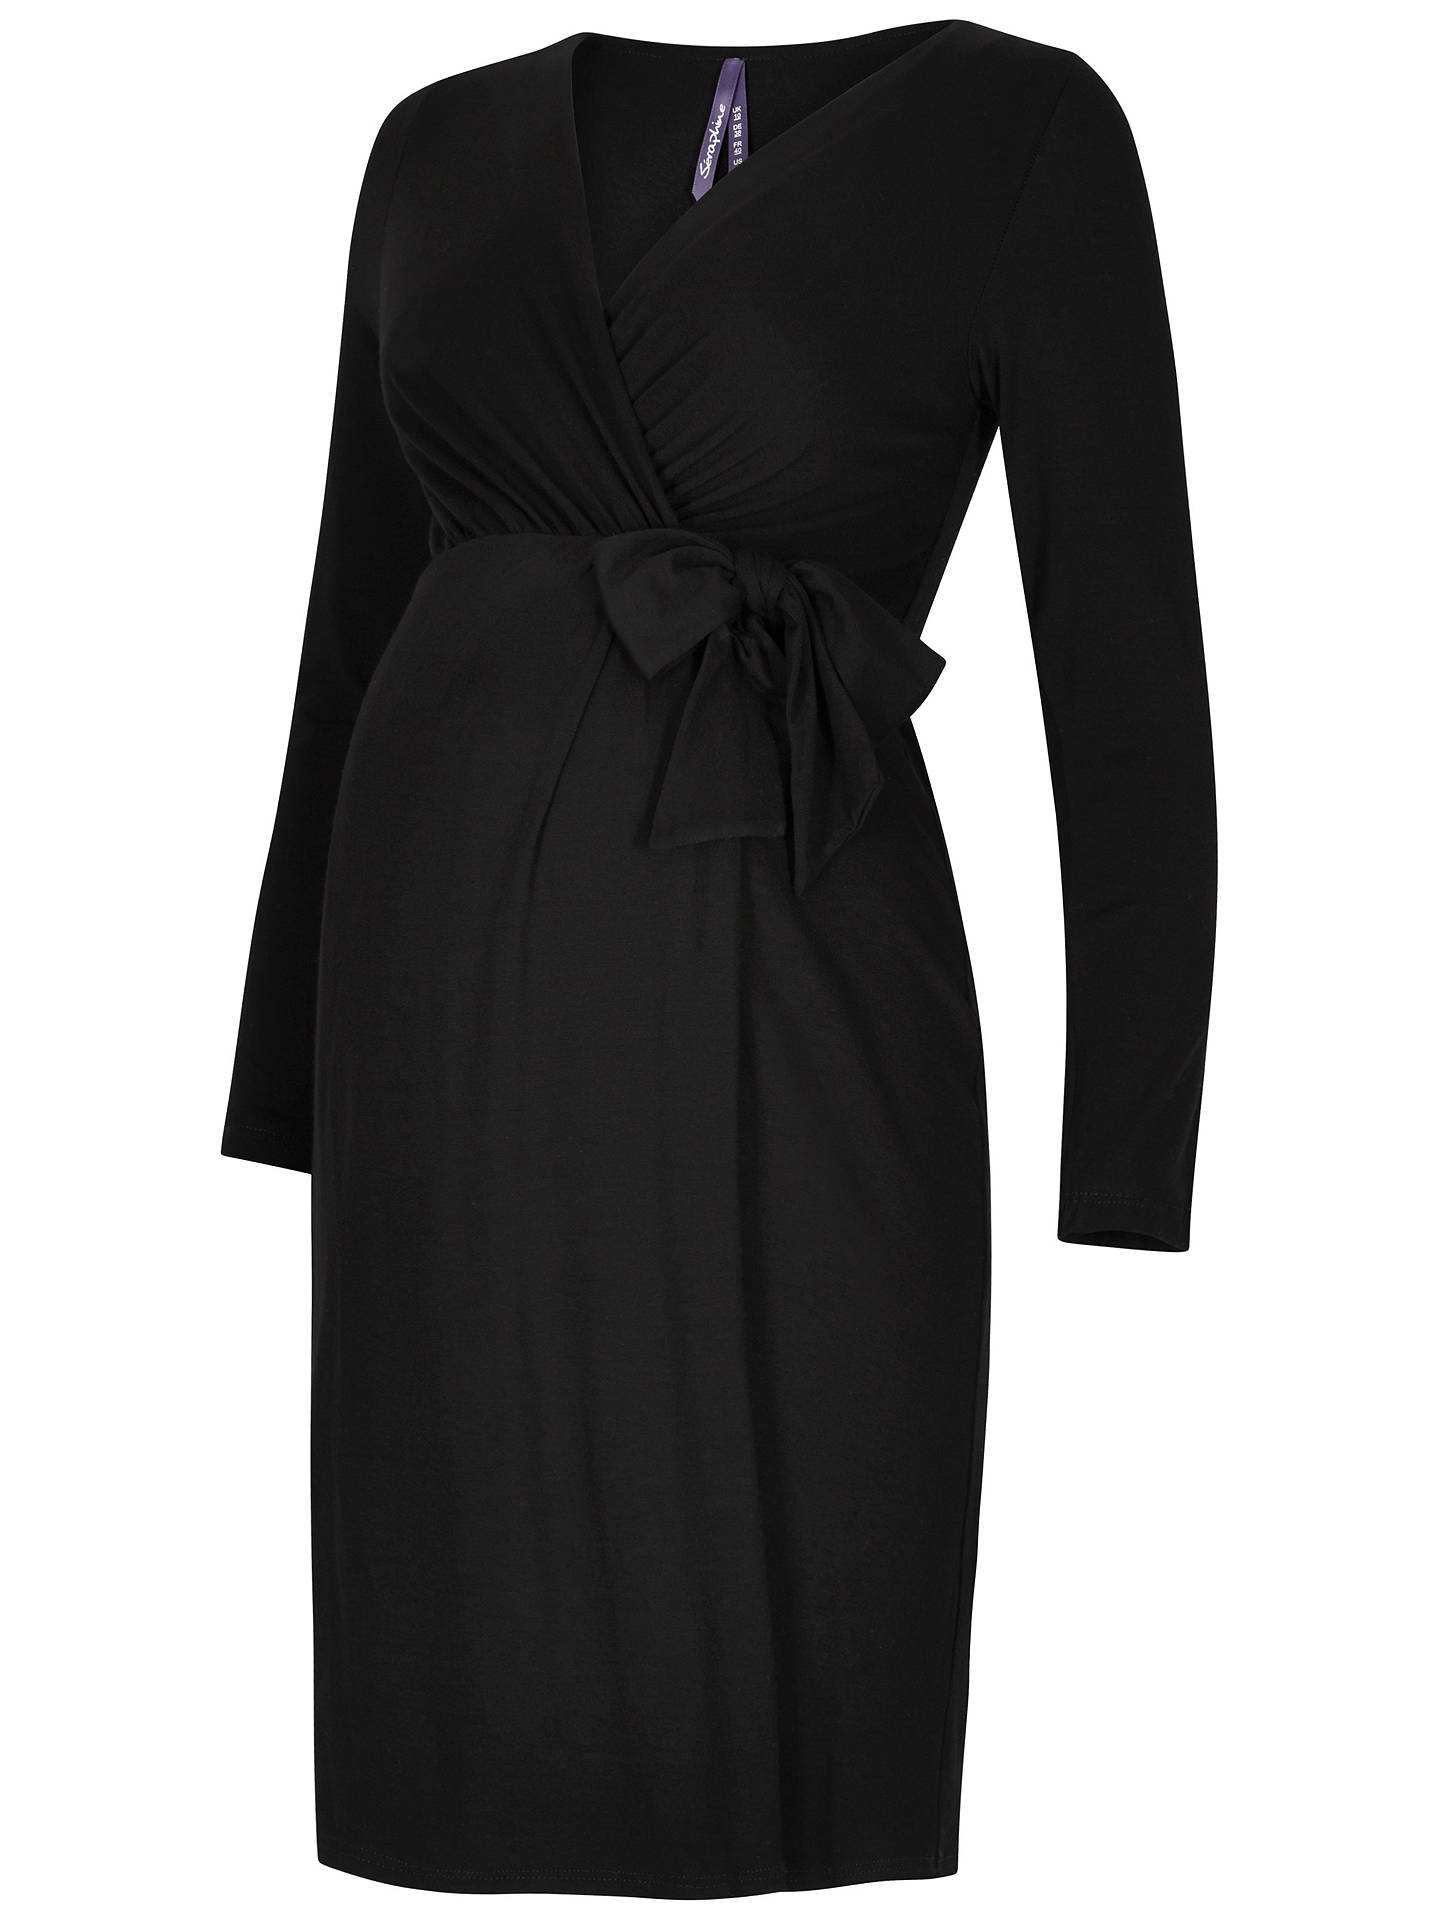 e14af75dace23 Buy Séraphine Tiana Maternity Tie Dress, Black, 8 Online at johnlewis.com  ...